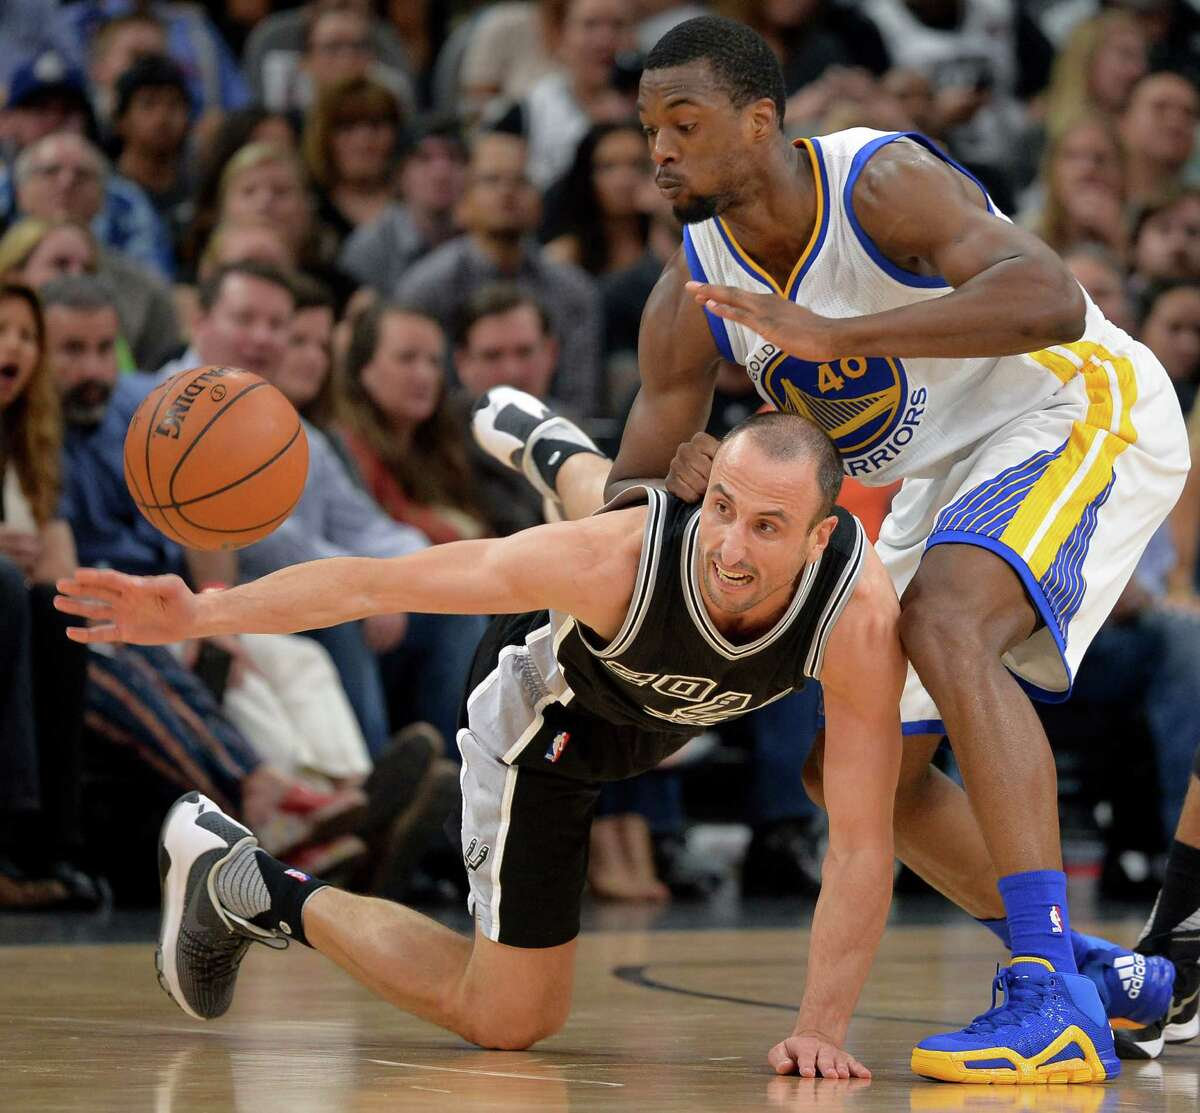 San Antonio Spurs' Manu Ginobili, bottom, of Argentina, chases the ball against Golden State Warriors' Harrison Barnes during the first half of an NBA basketball game, Sunday, April 10, 2016, in San Antonio. (AP Photo/Darren Abate)